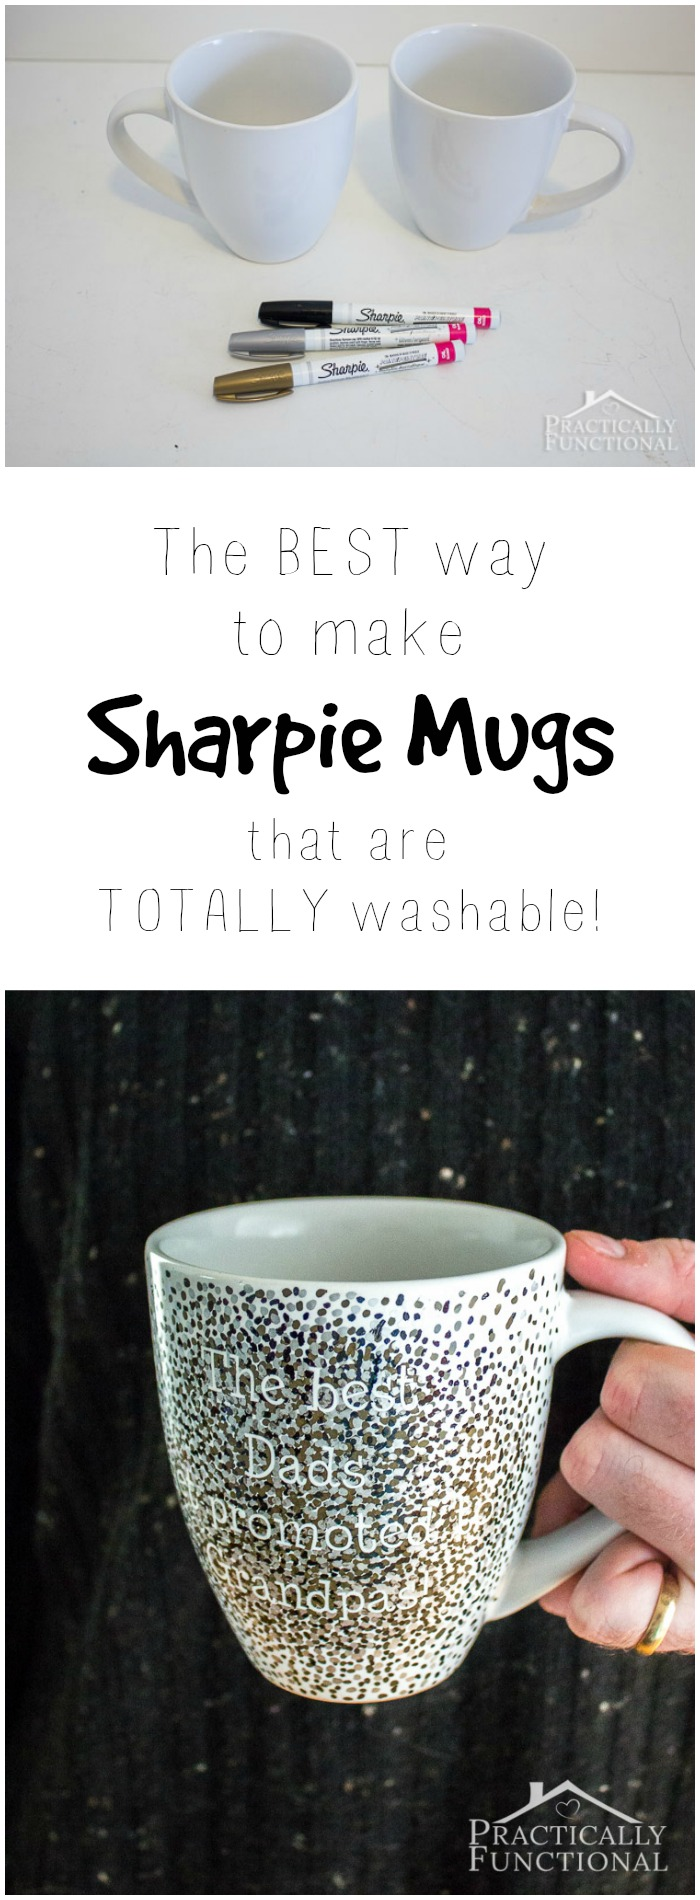 This is the best tutorial for making DIY sharpie mugs that are washable!